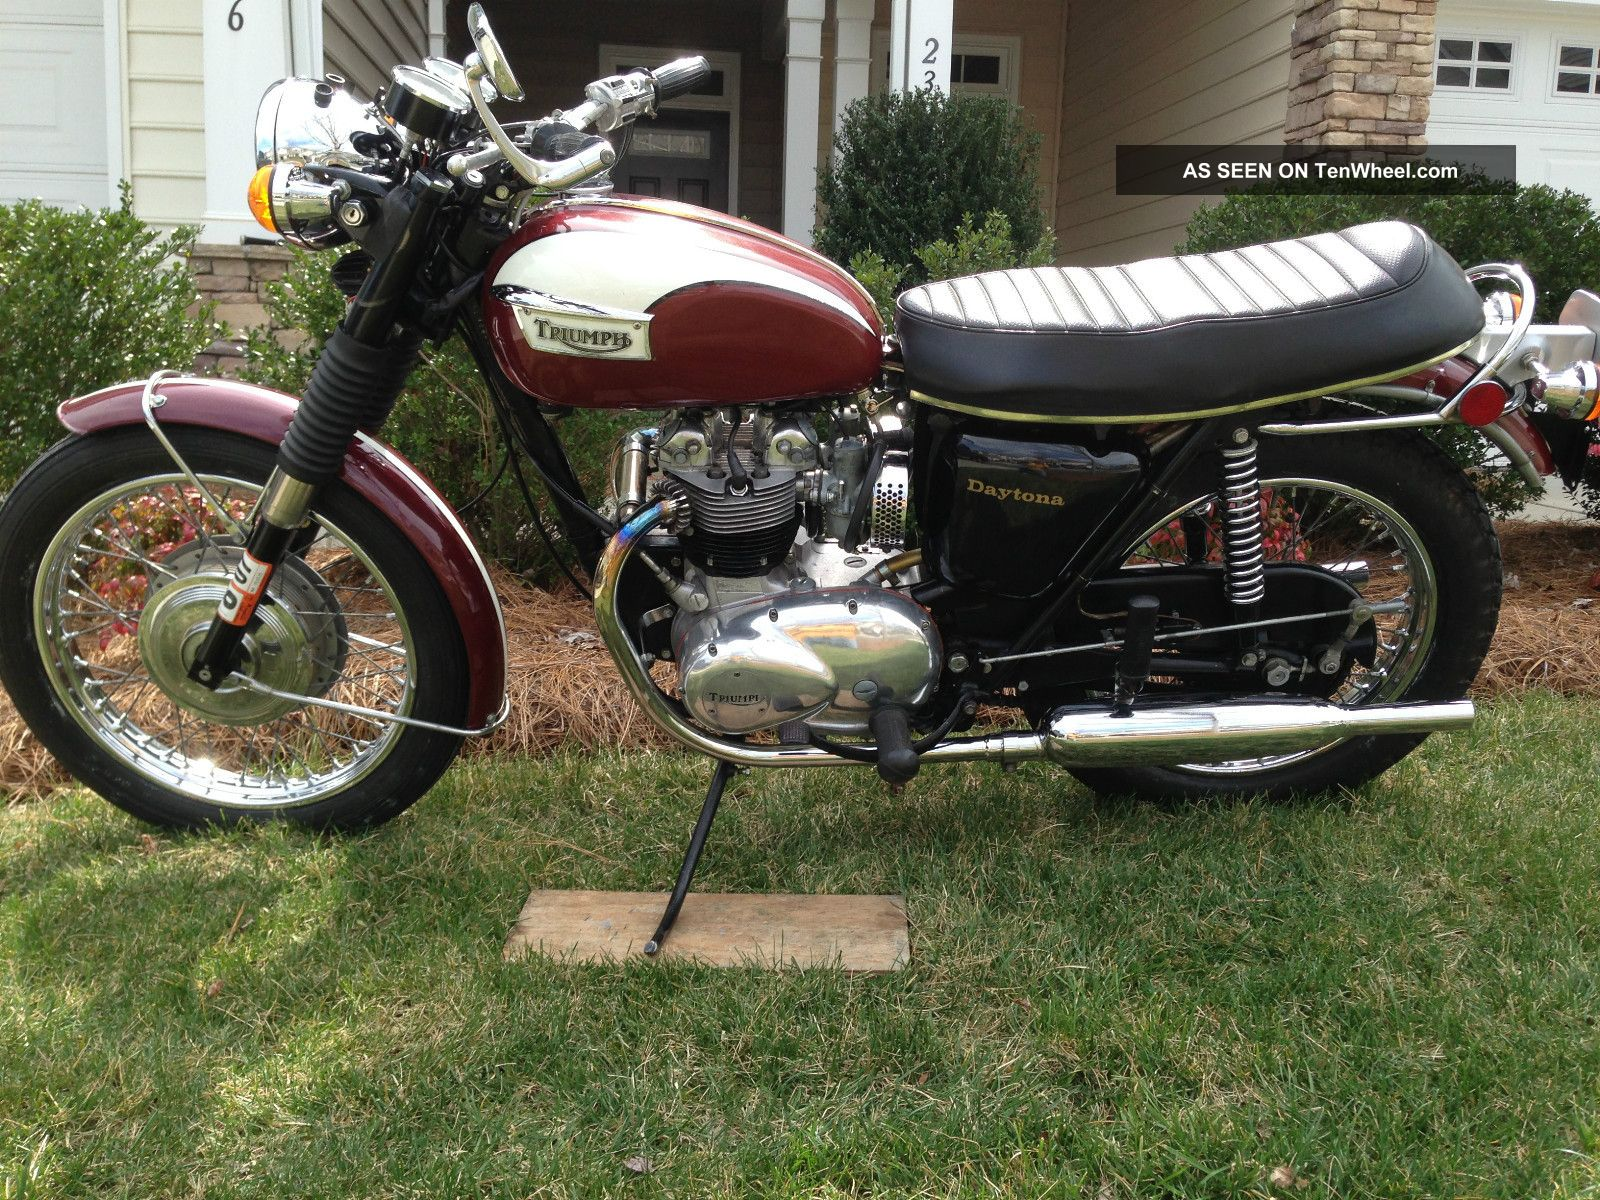 1972 triumph motorcycle modelson - photo #7